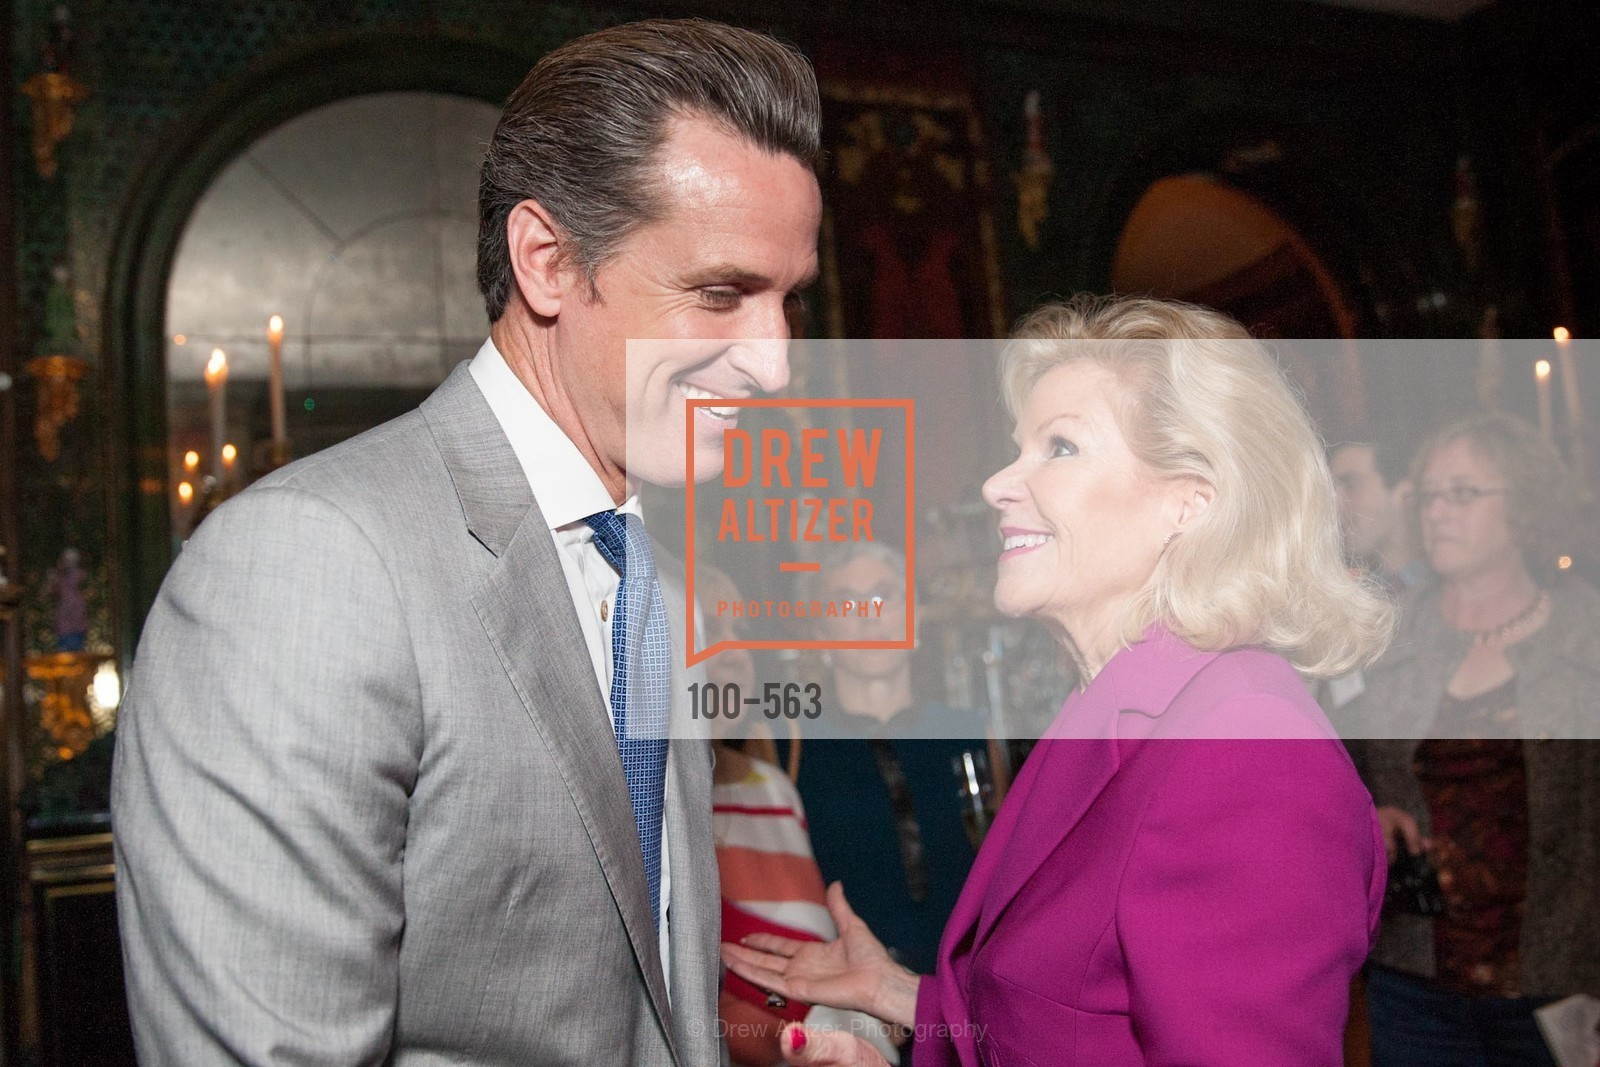 Honorable Gavin Newsom, Dede Wilsey, HAMILTON FAMILY CENTER Top Donor Cocktail Reception, US, September 10th, 2014,Drew Altizer, Drew Altizer Photography, full-service agency, private events, San Francisco photographer, photographer california